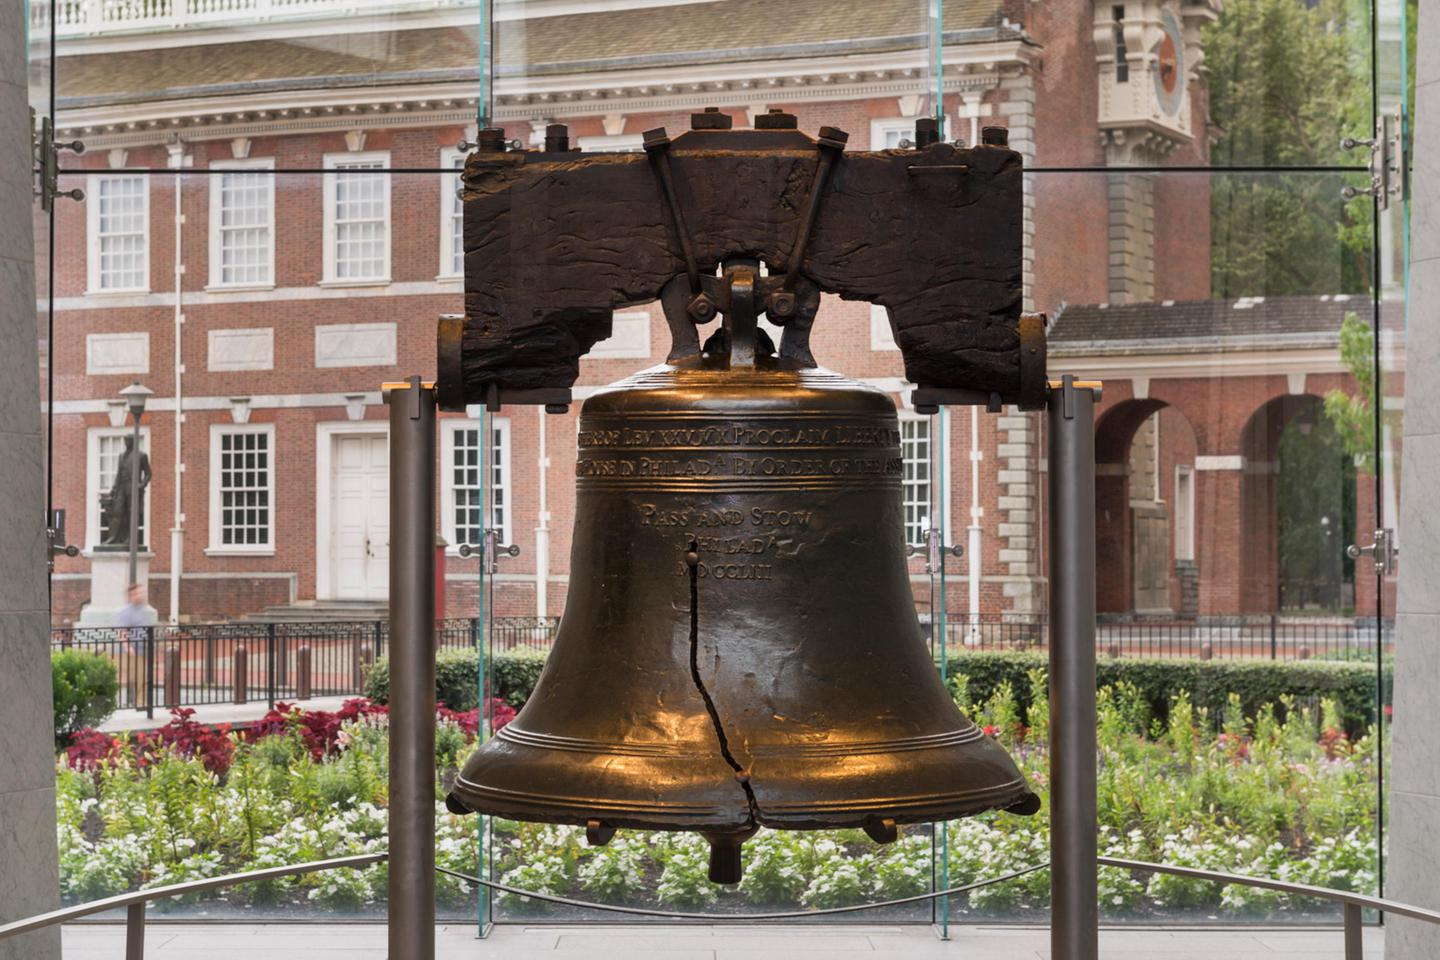 The Liberty BellRecognizable for its crack, the Liberty Bell remains significant today for its message of liberty.